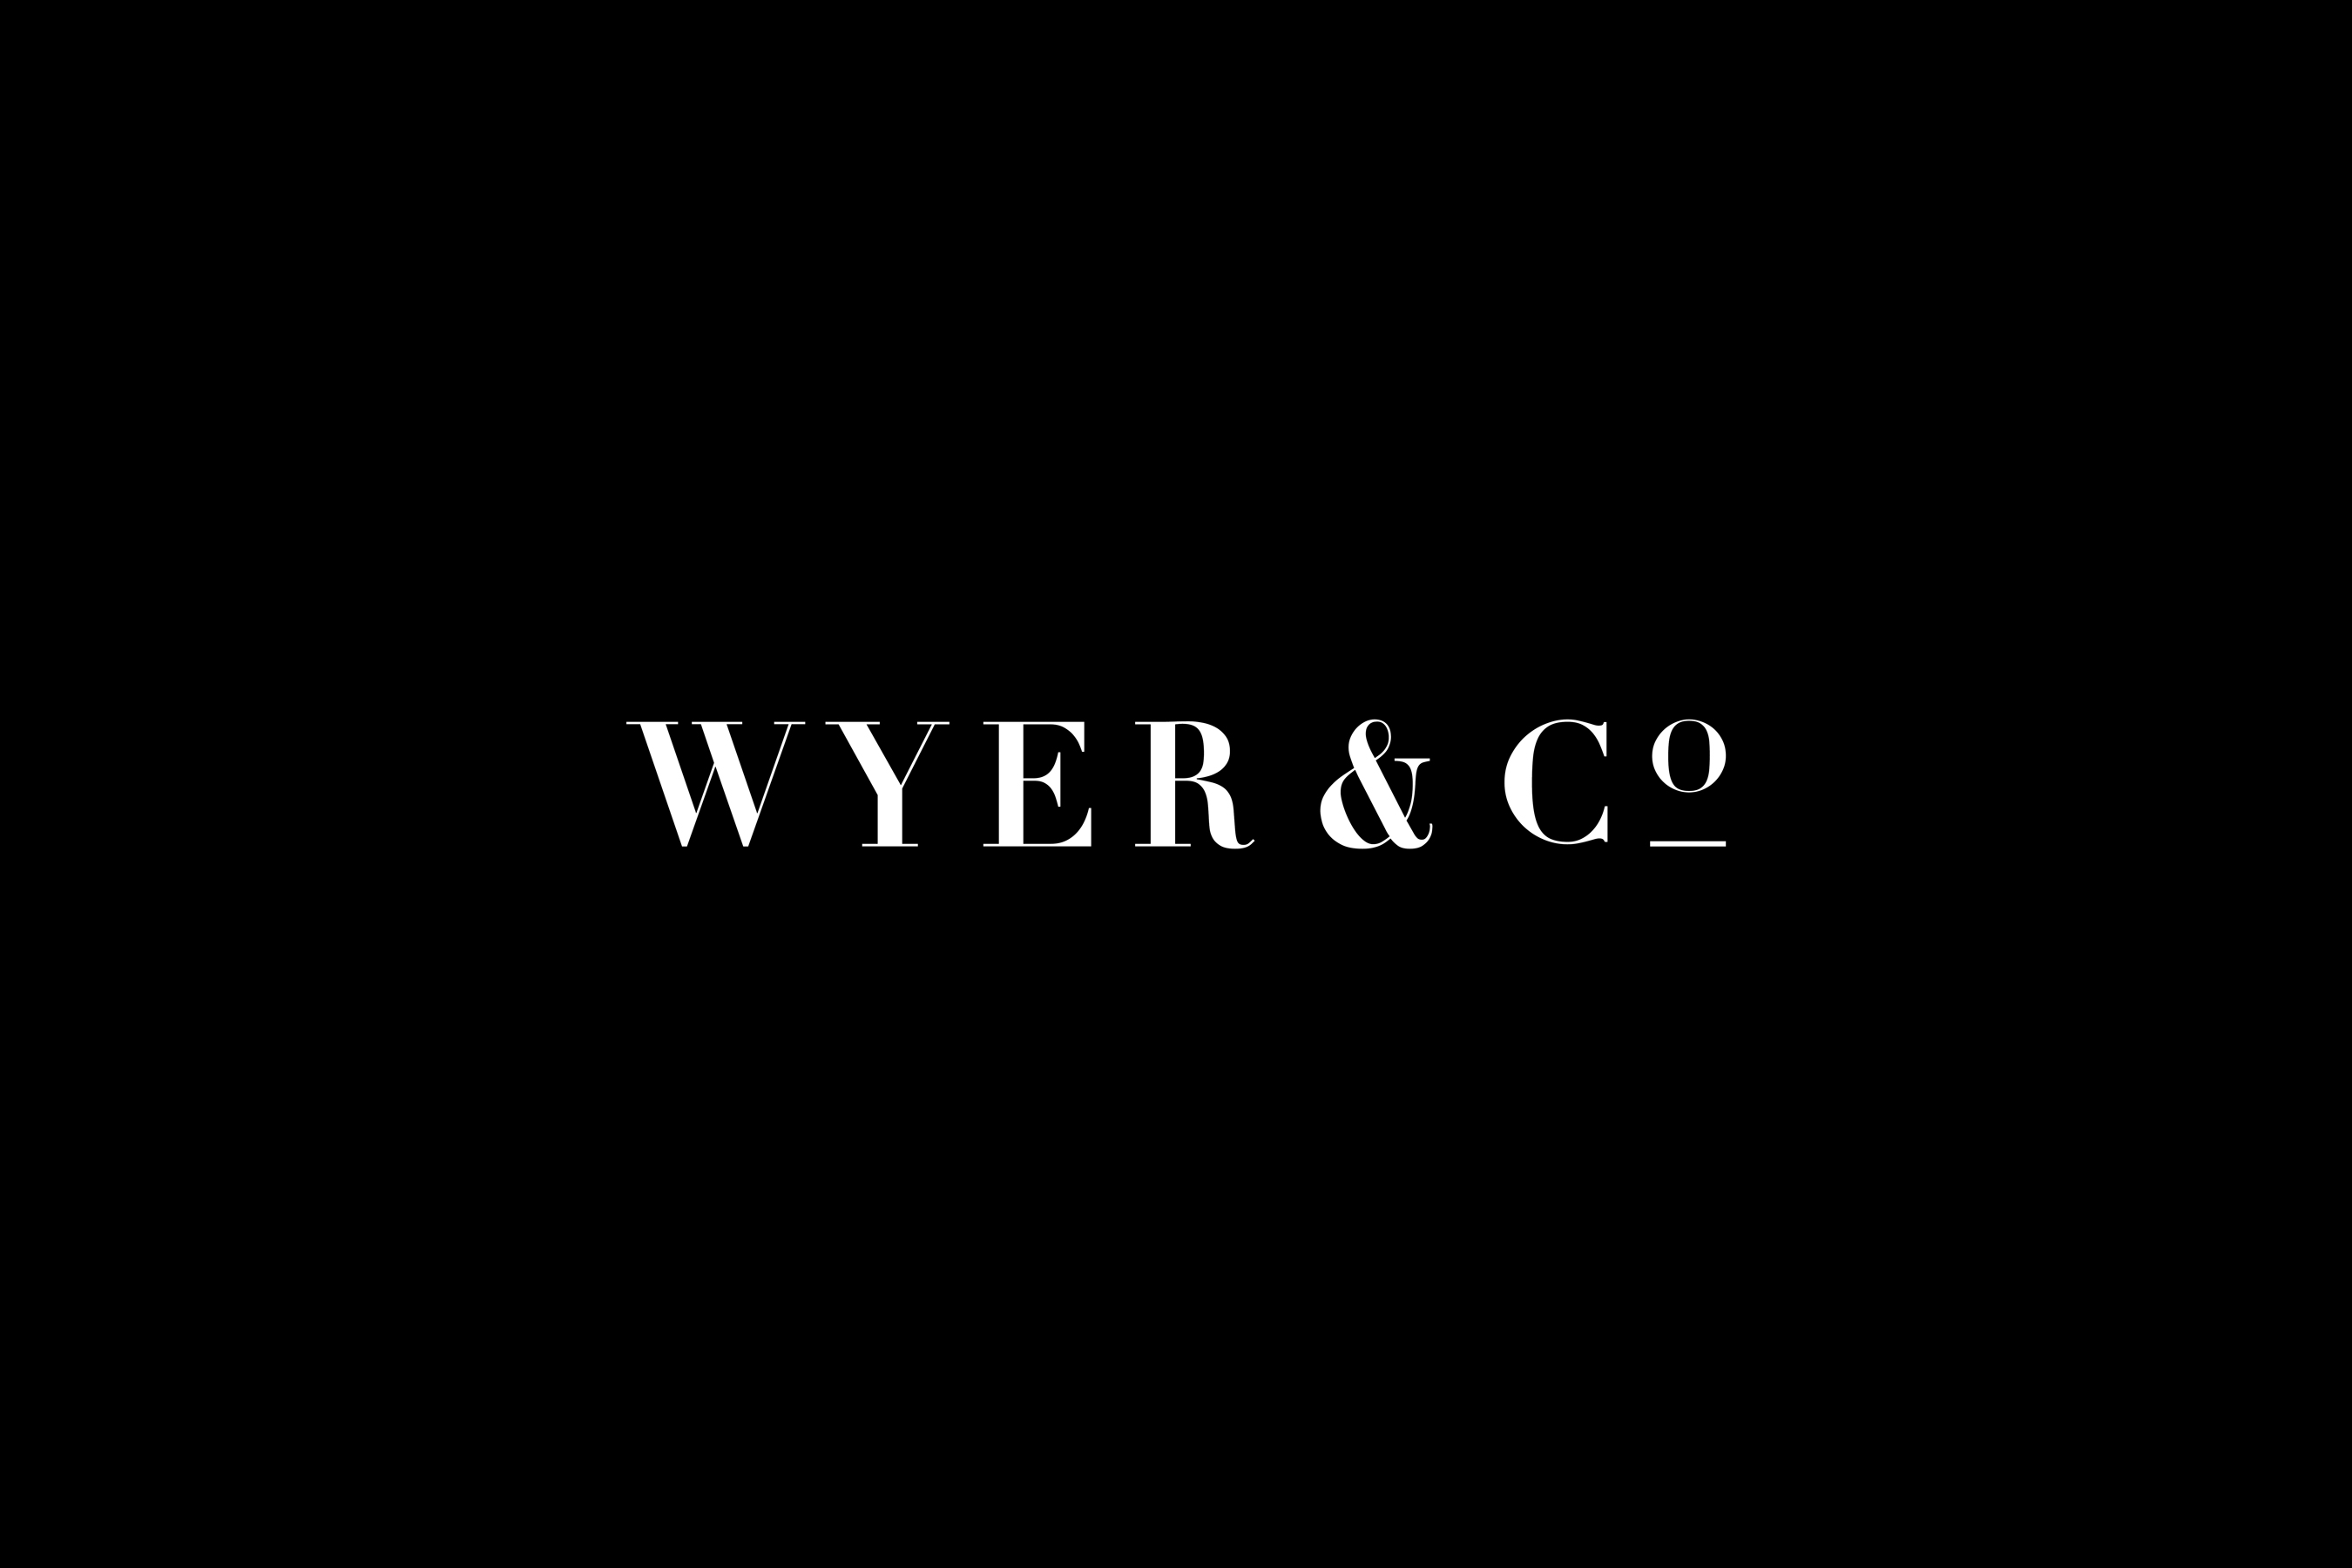 Wyer & Co